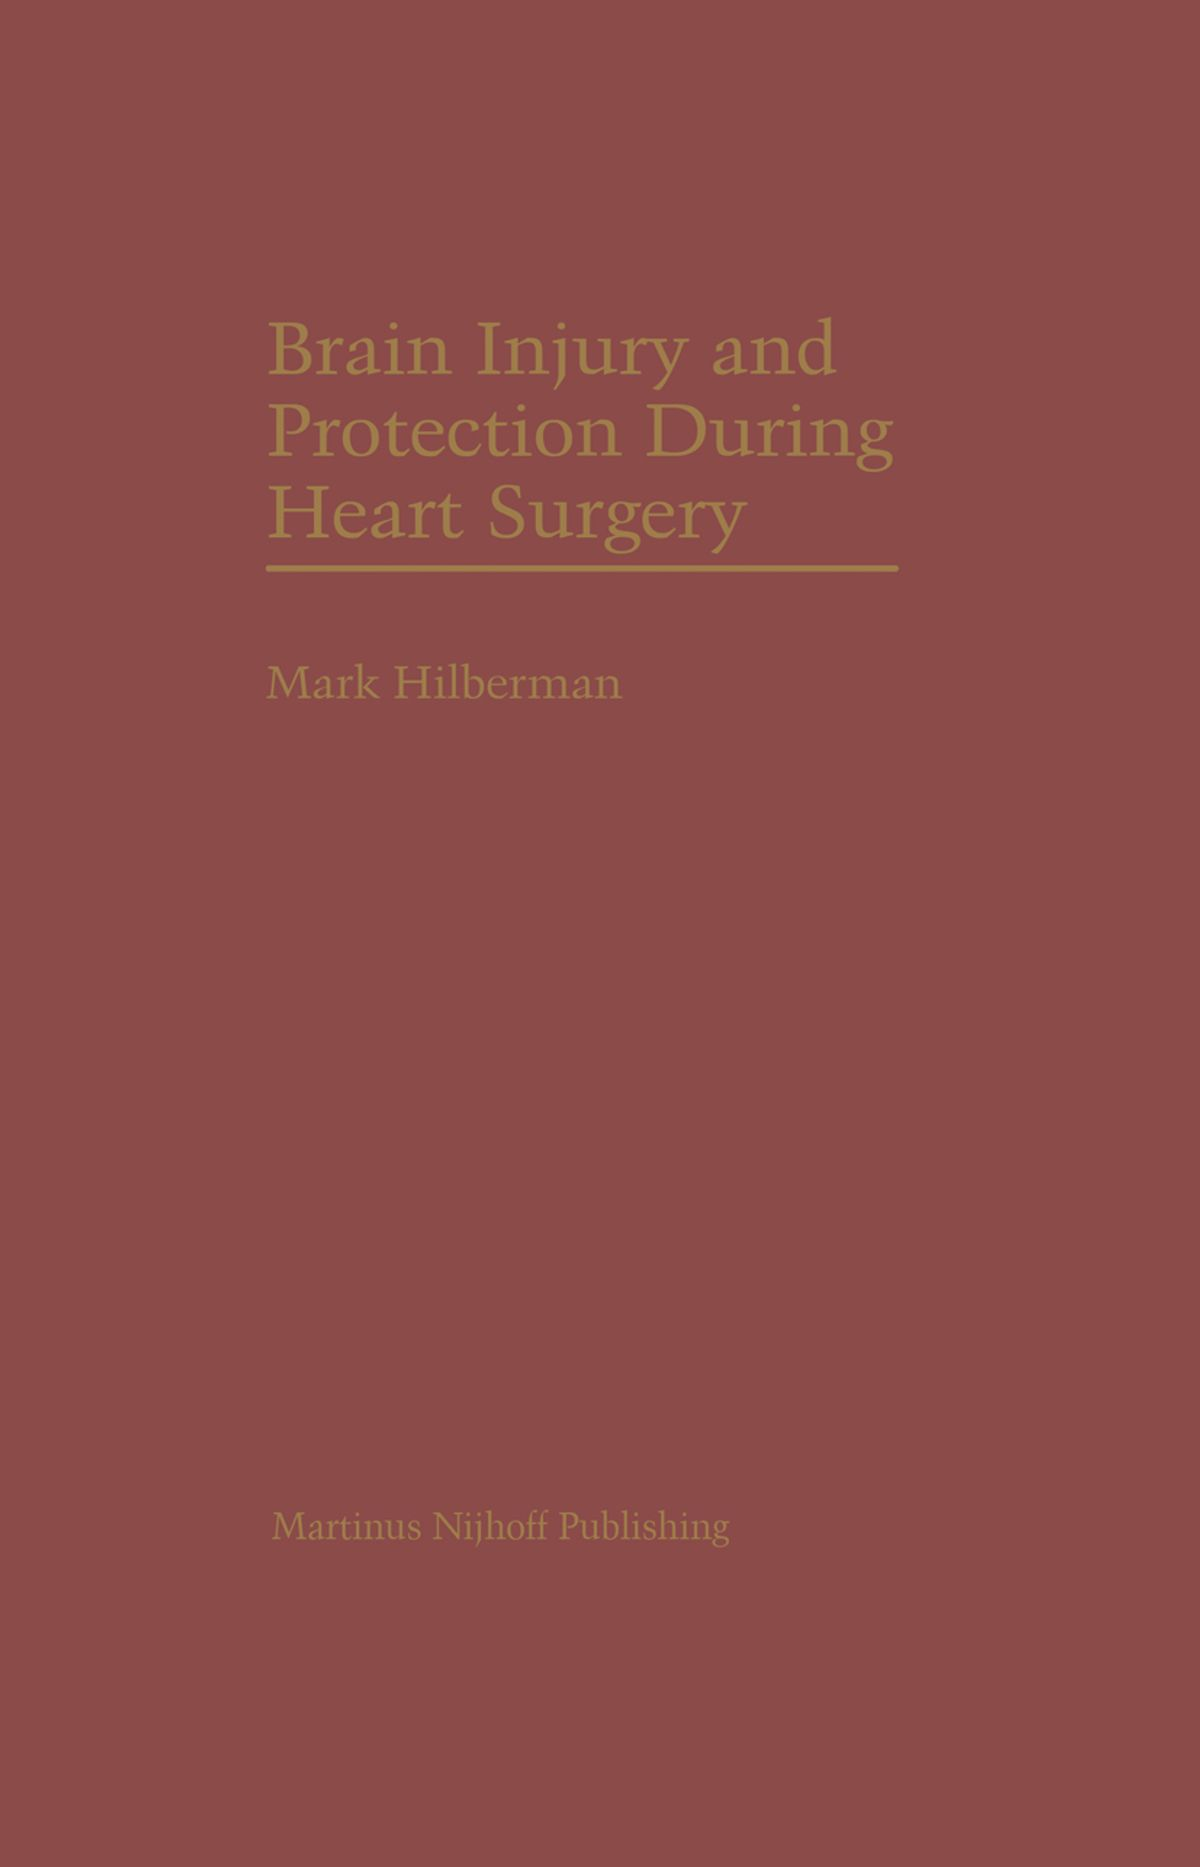 Brain Injury and Protection During Heart Surgery